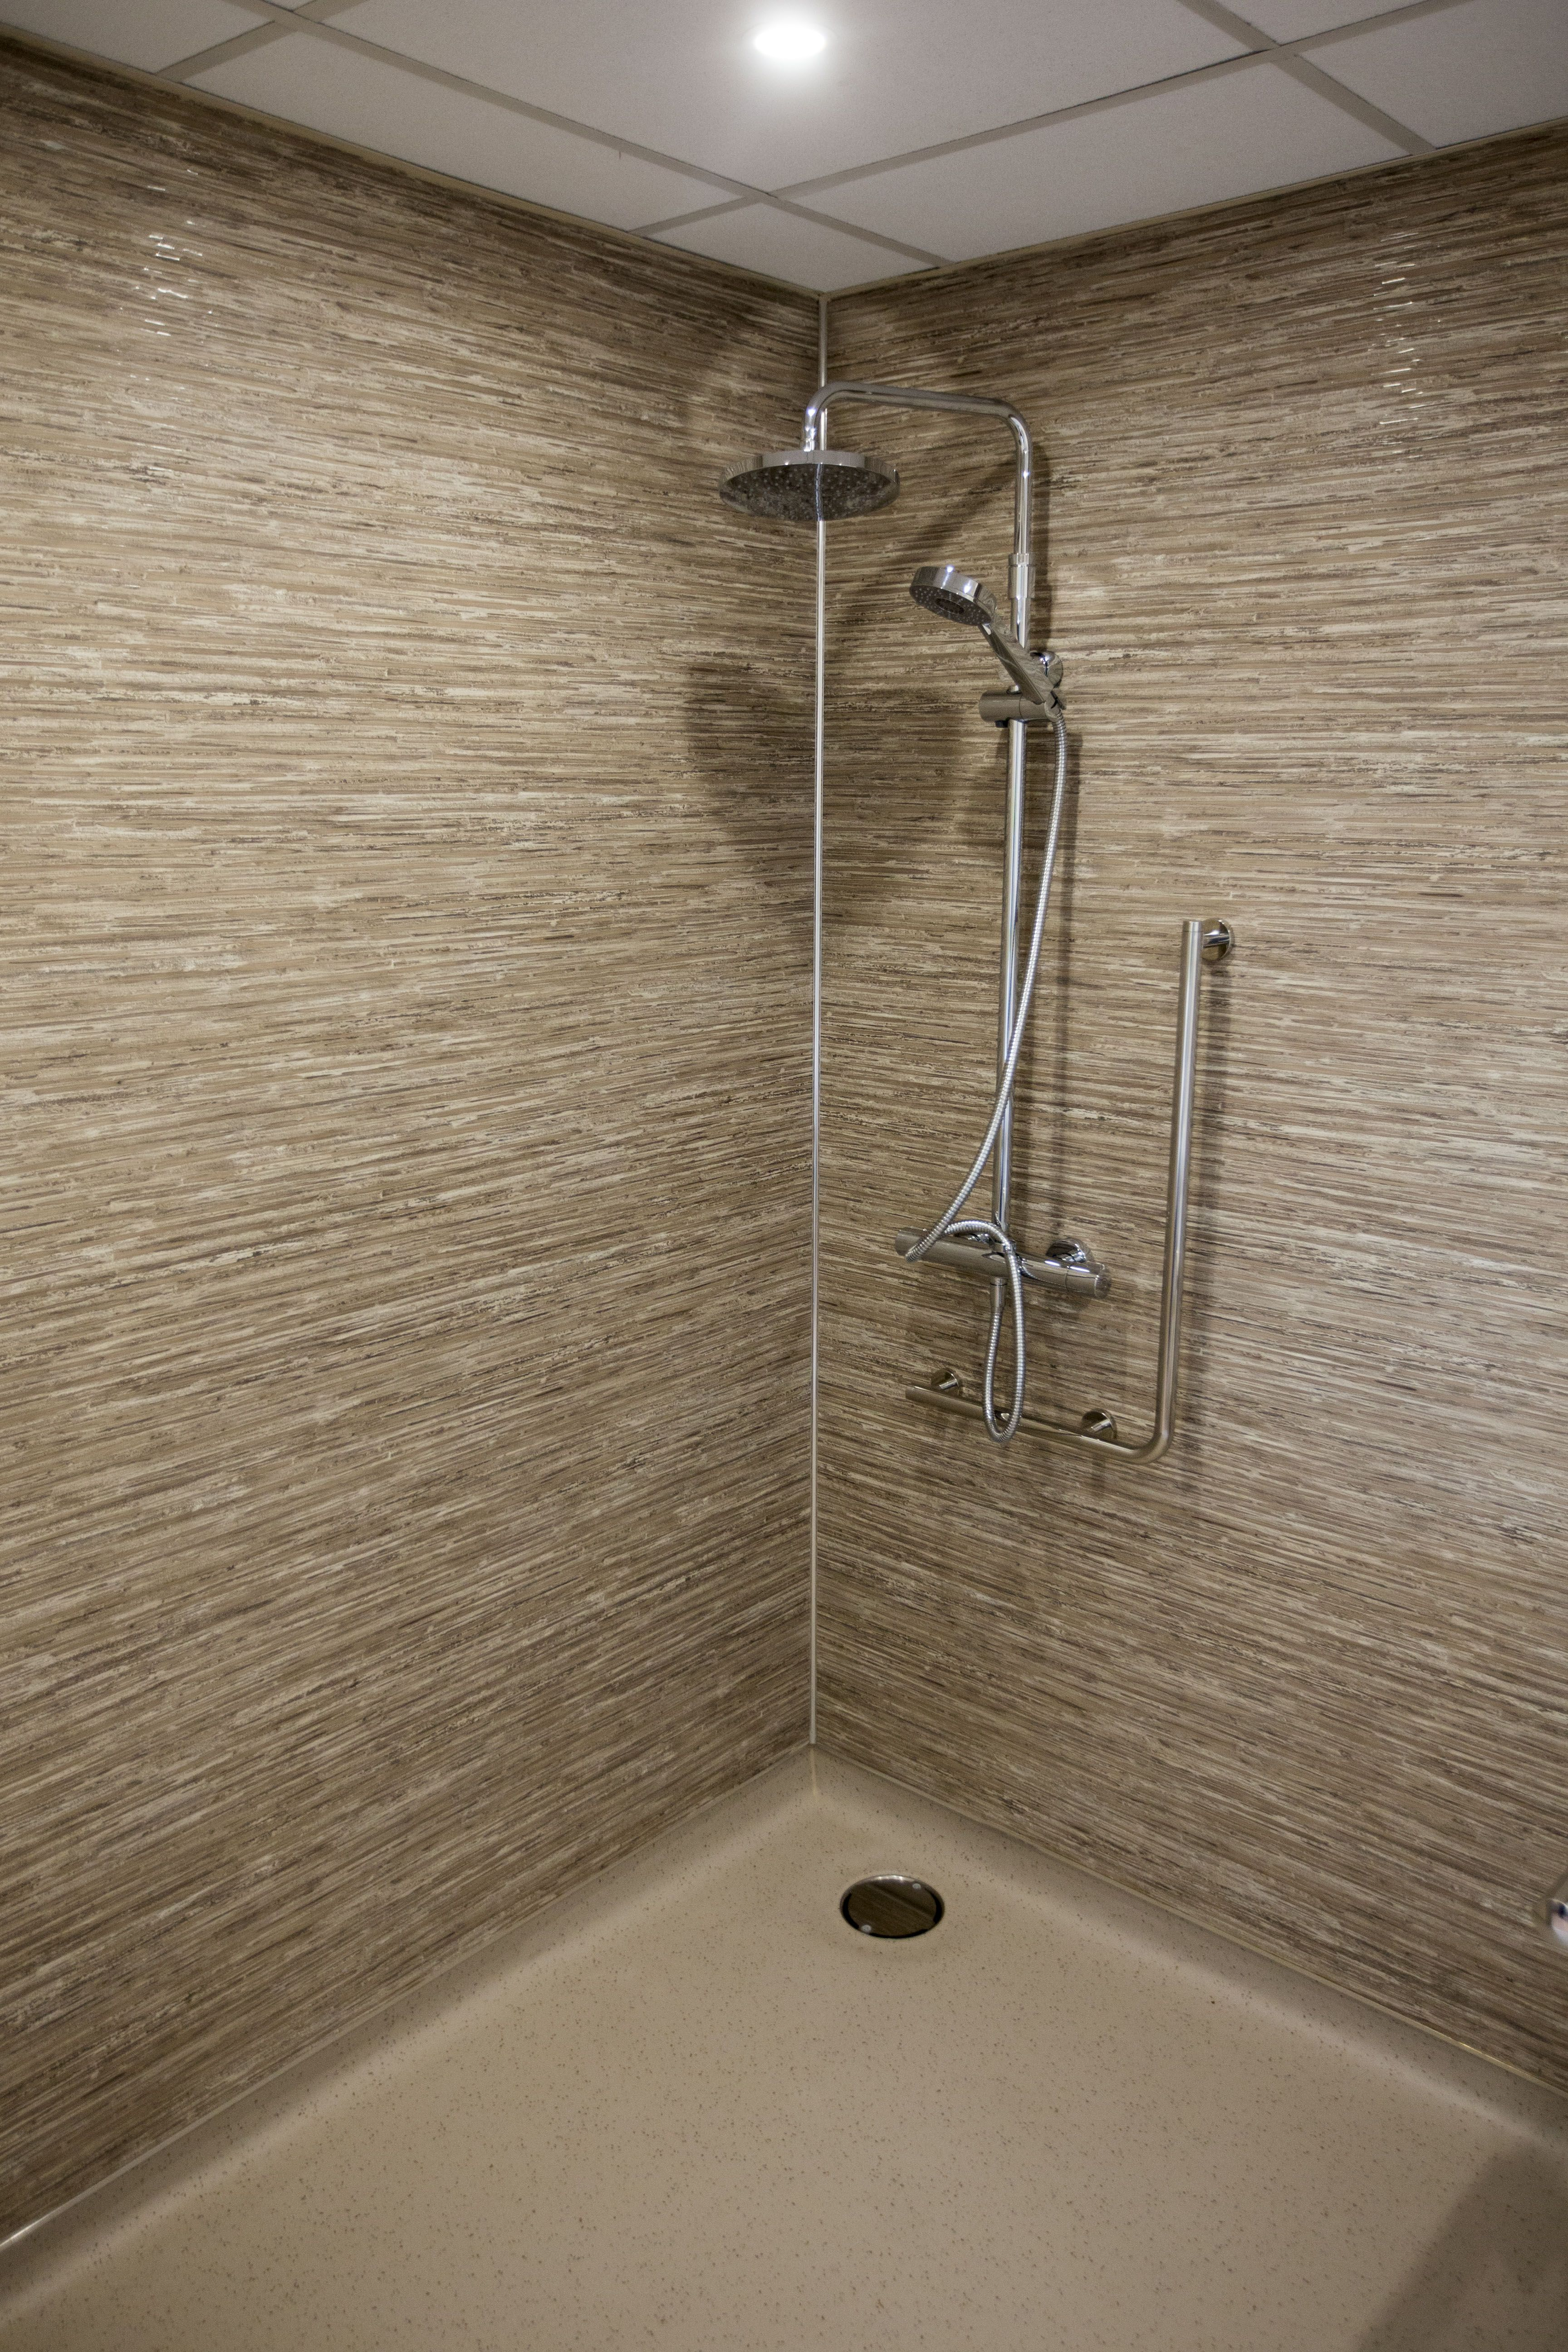 Ibis Head Office Recently Made A Grant Fund Available To Its Hotels For Upgrading Room Facilities And Glasgow Quay Was Sel Shower Wall Panels Hotel Shower Wall